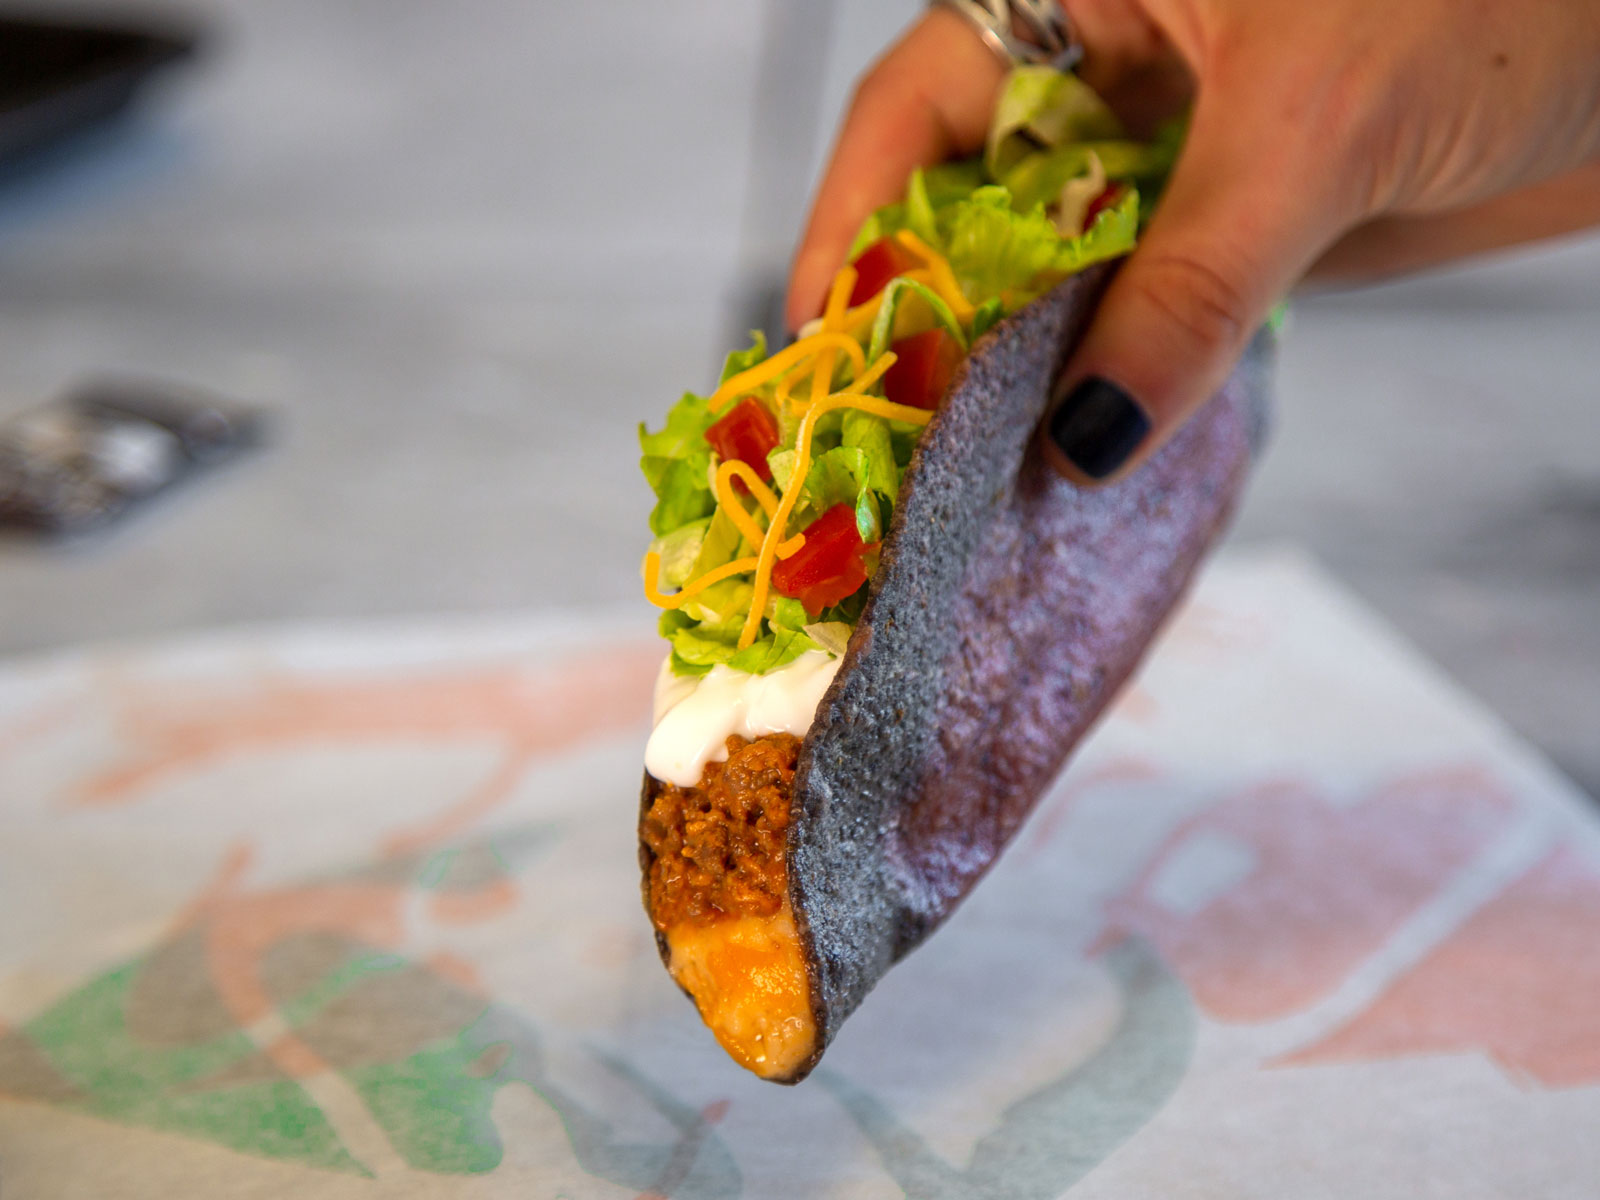 Taco Bell Expands Trial of 'Midnight Melt Taco' with Blue Corn Shell